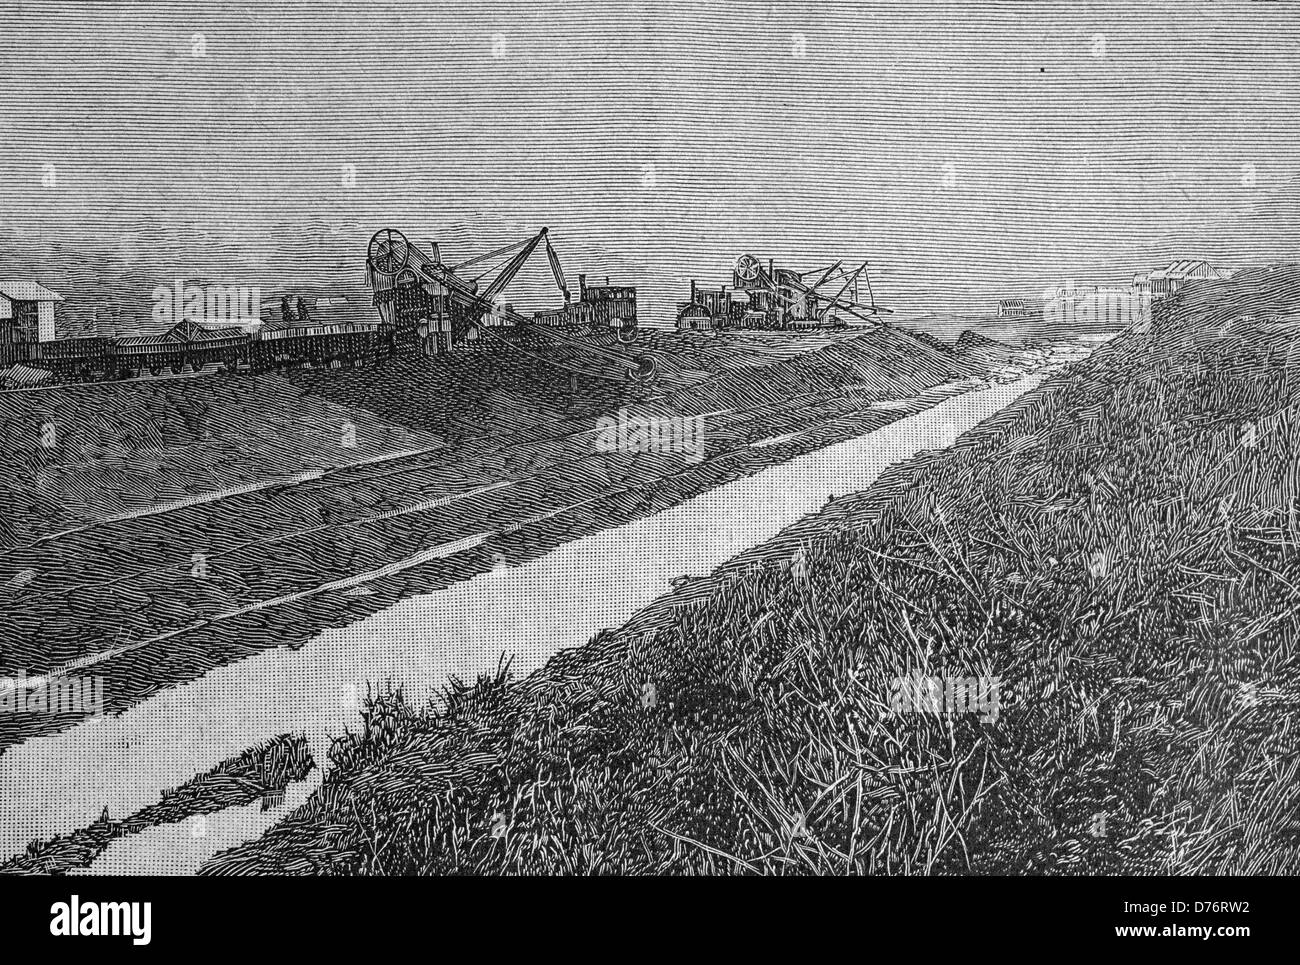 Construction of the Panama Canal, Central America, woodcut circa 1871 - Stock Image